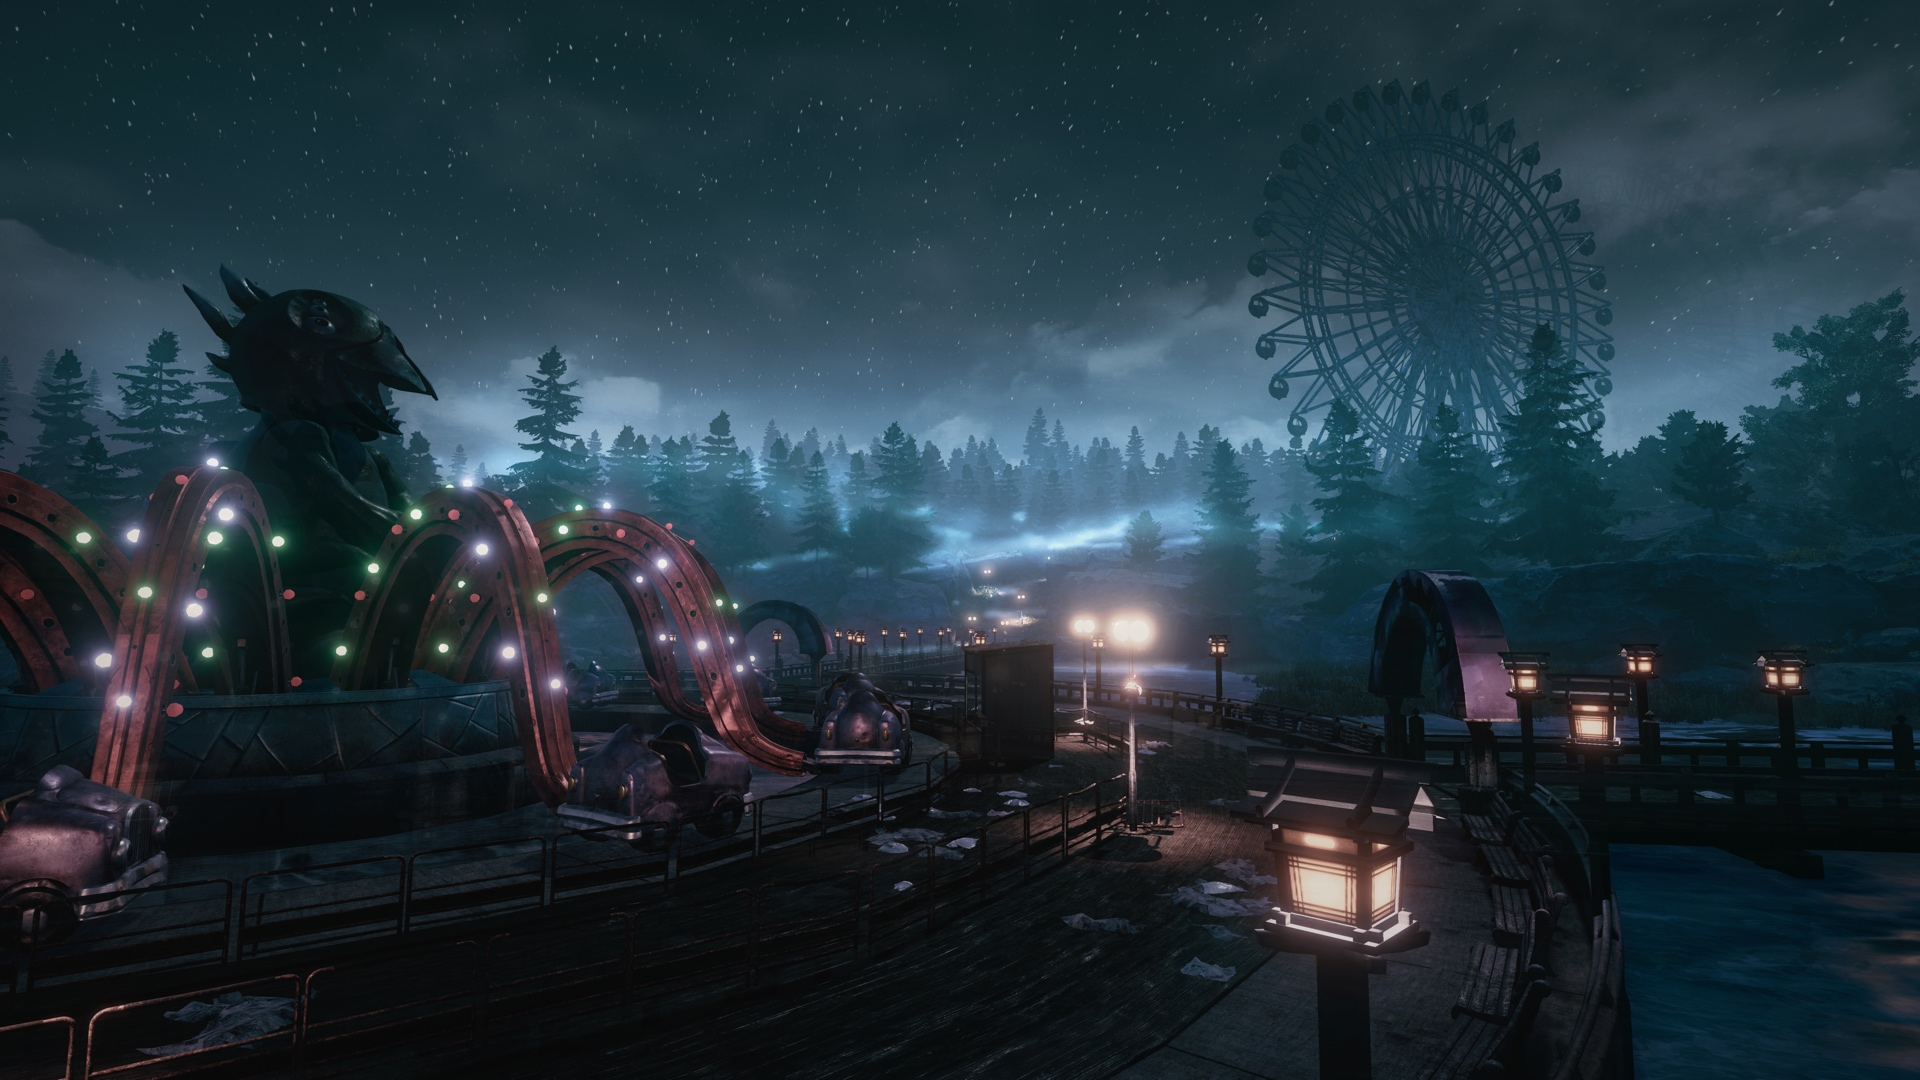 Terrifying Horror Game The Park Gets PS4/Xbox One Release Date The Park Screenshot 2 3240.0